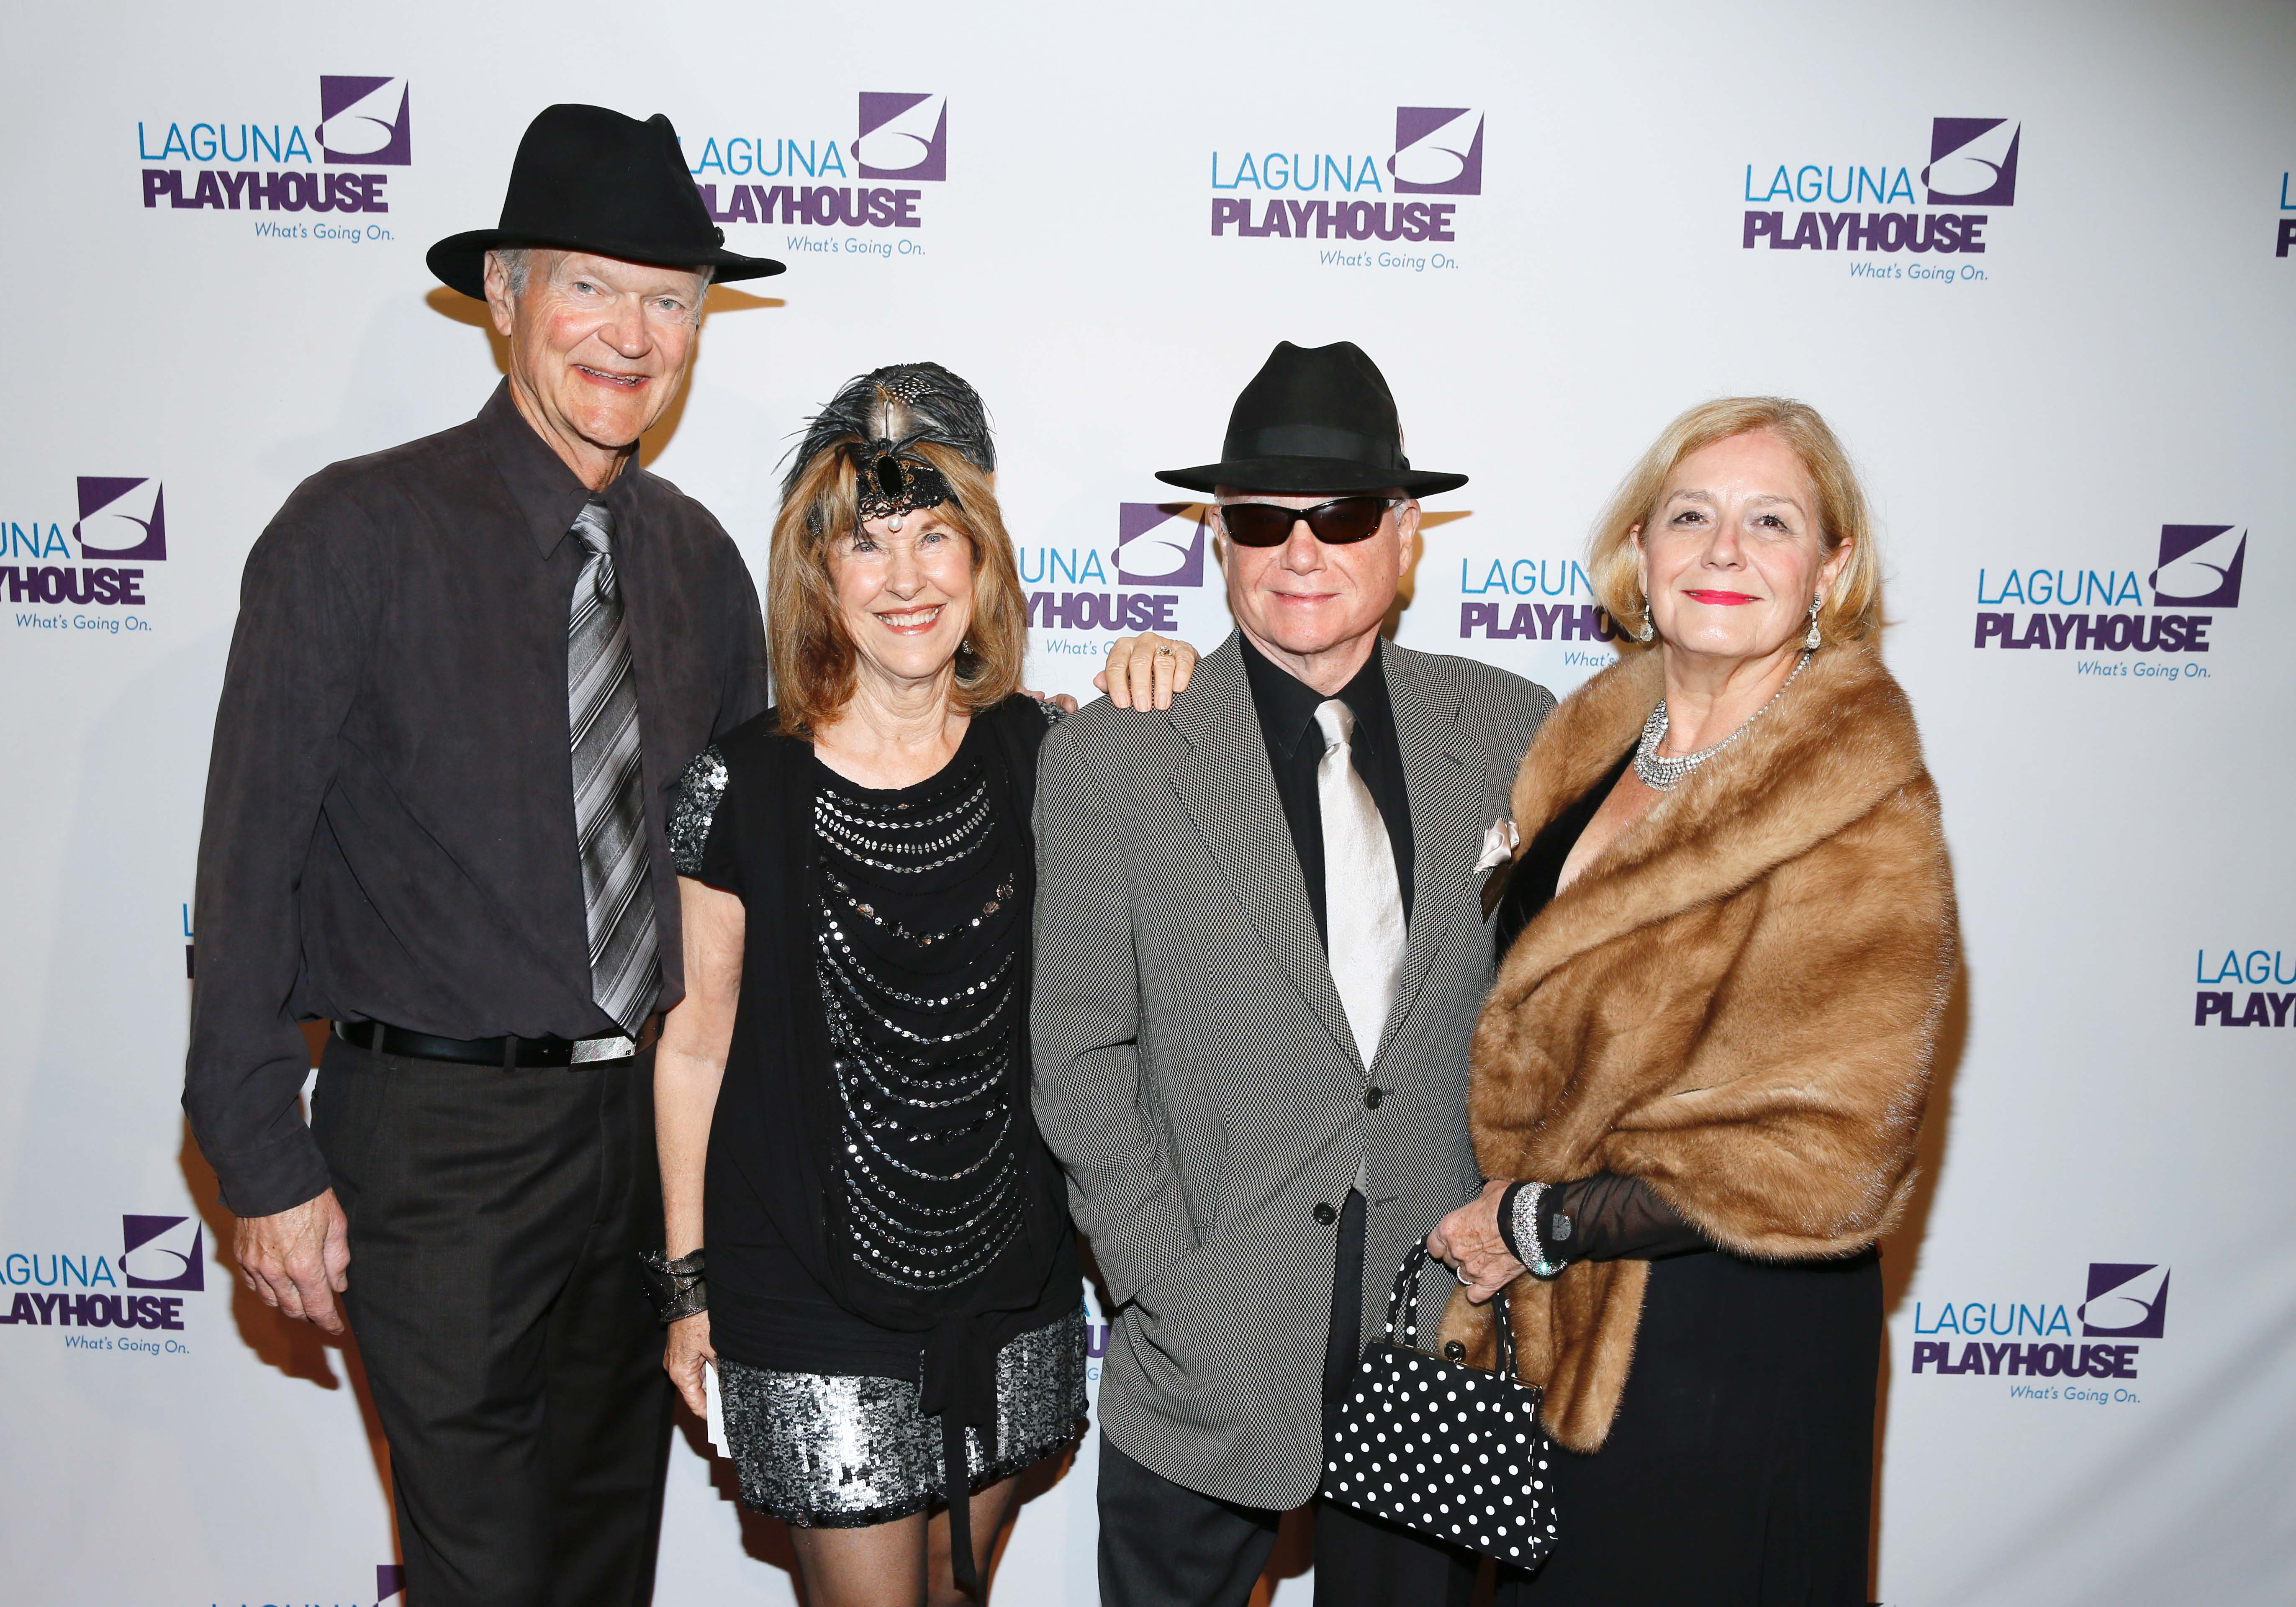 Board members Gary & Betsy Jenkins and Cody & Deborah Engel at